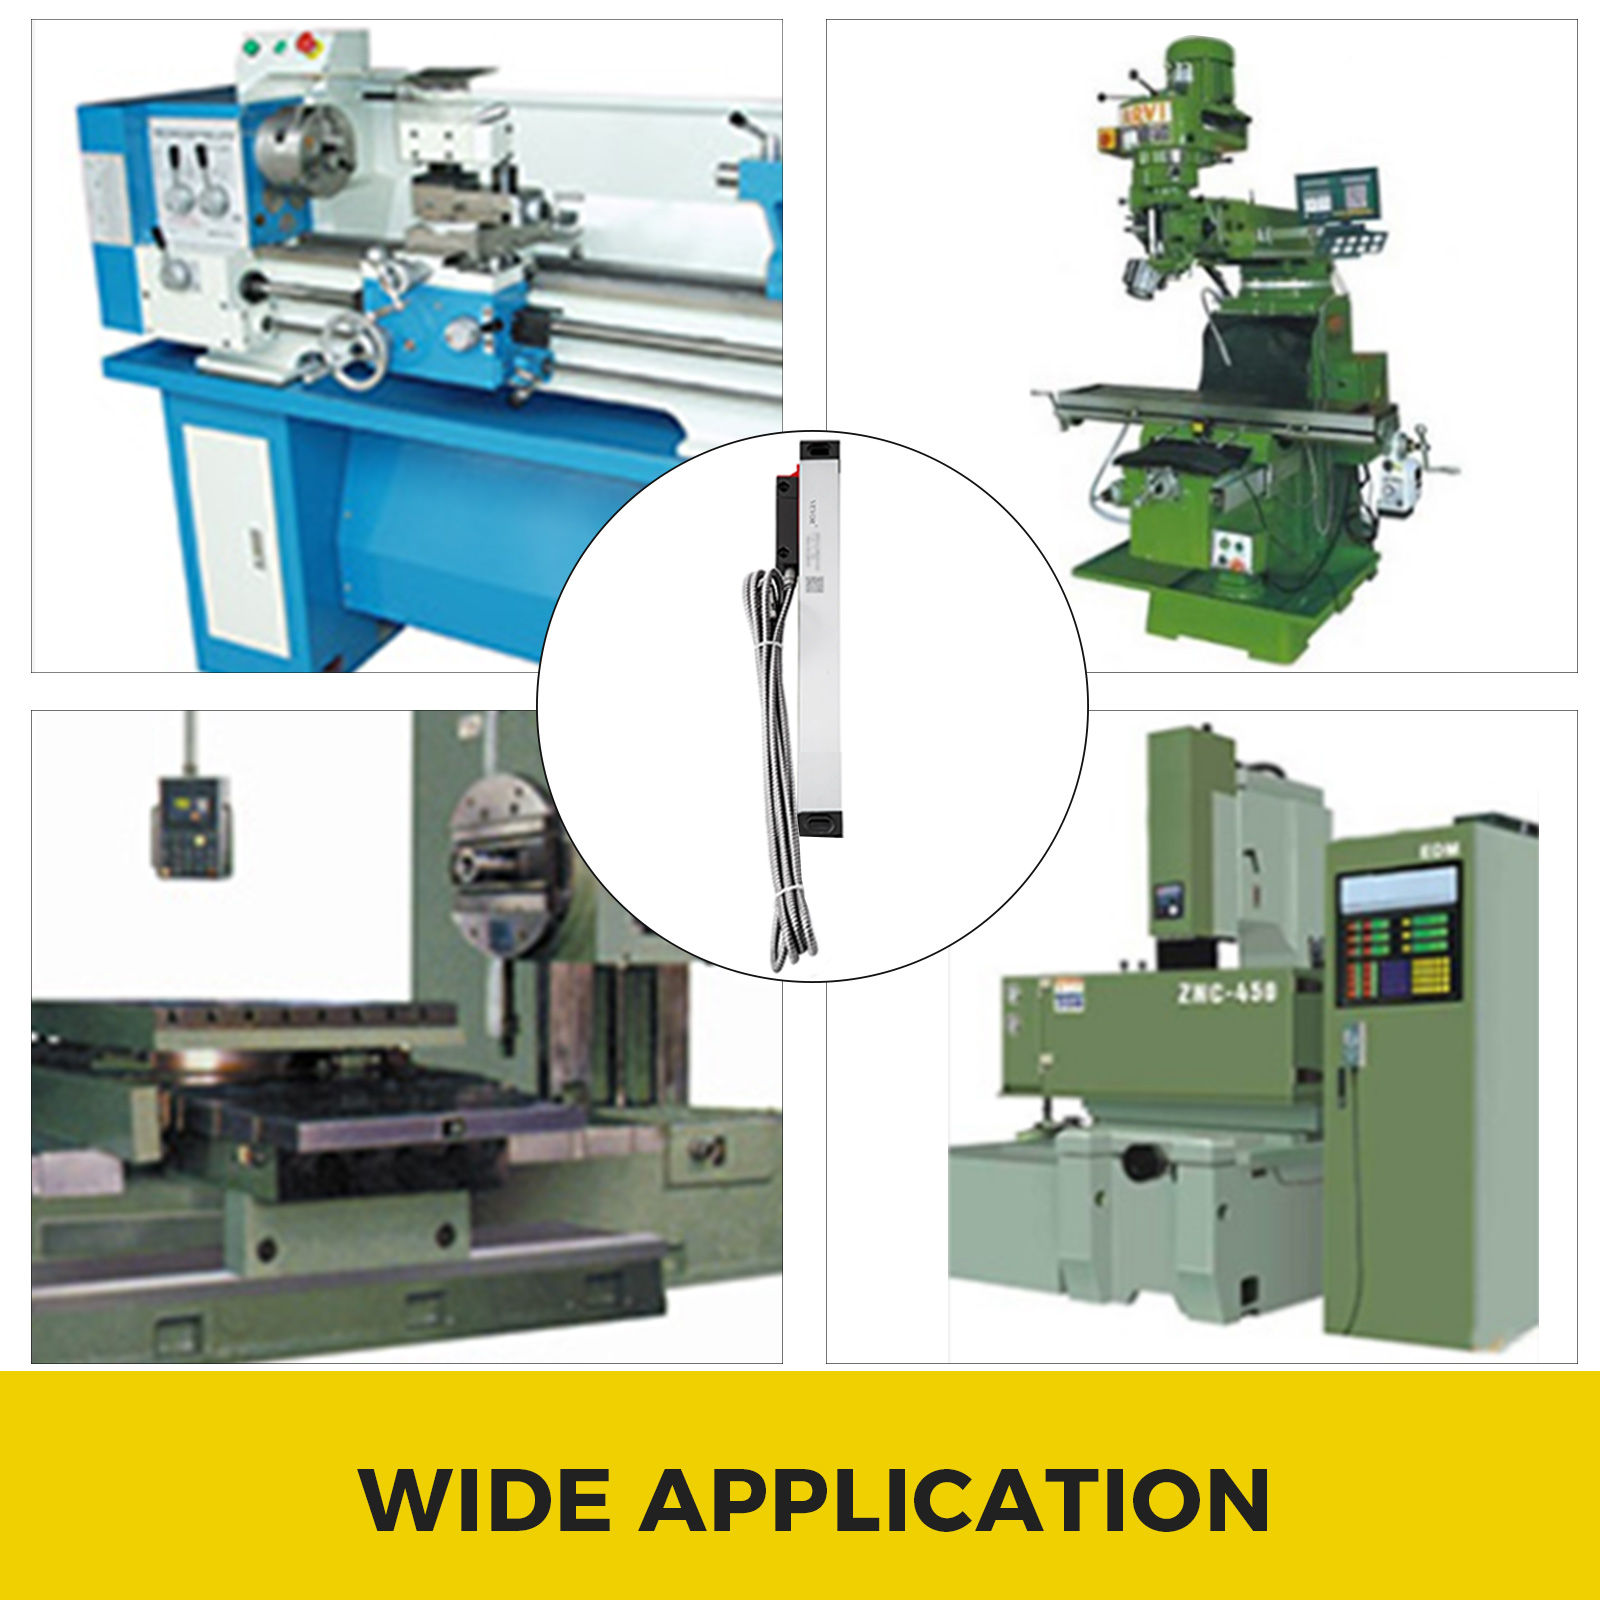 2-3-Axis-Digital-Readout-Linear-Scale-Double-Seal-5-Bearing-System-Grinding thumbnail 67